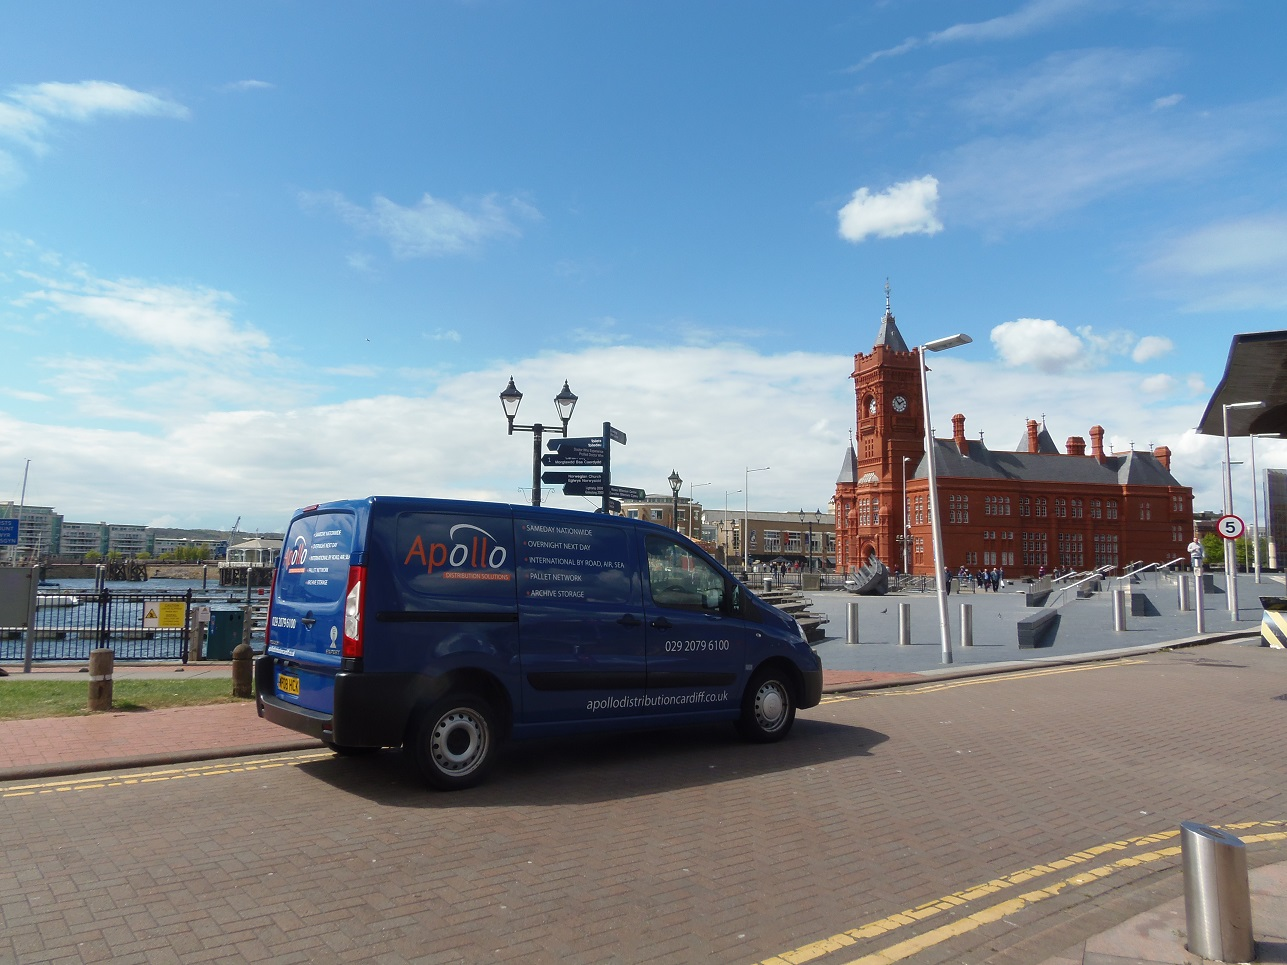 This picture shows an Apollo van outside the Pierhead Building in Cardiff delivering courier services nationwide from a small package to pallets. Either a dedicated same day service, overnight or international we can help with all your needs